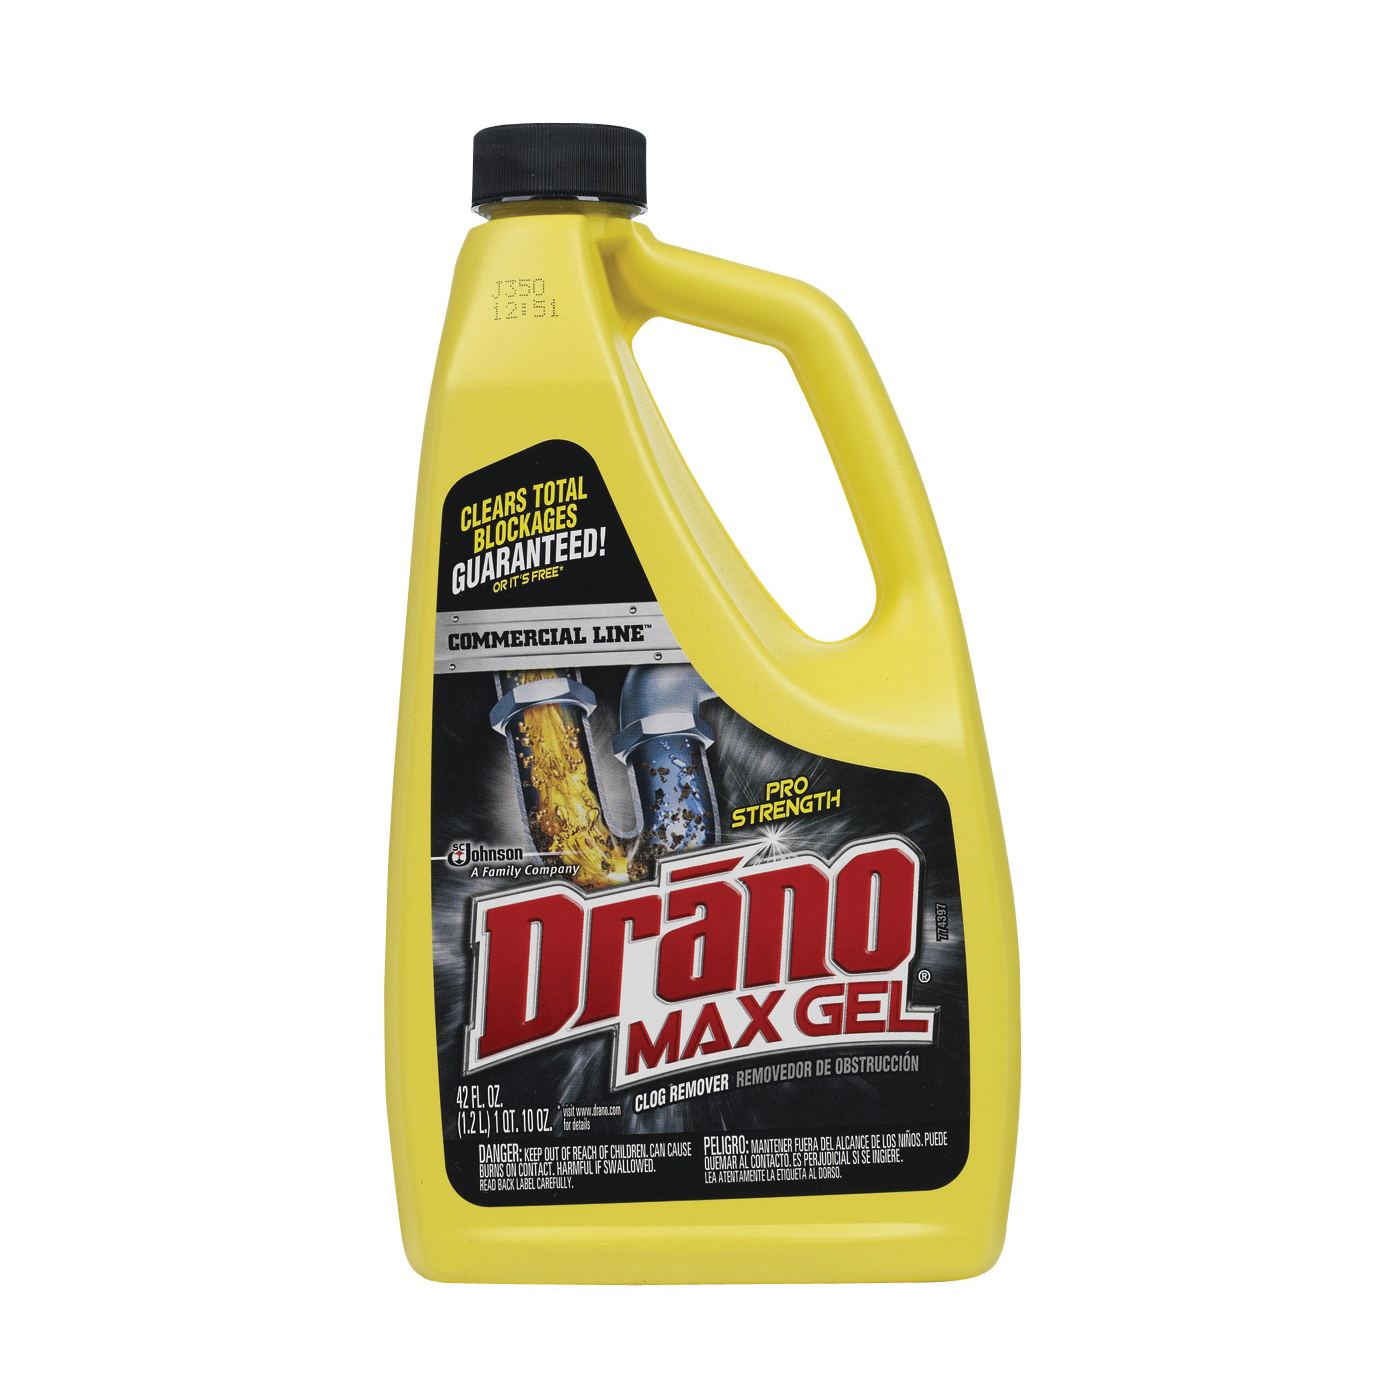 Picture of Drano Max Gel 22118 Clog Remover, Gel, Natural, Bleach, 42 oz Package, Bottle